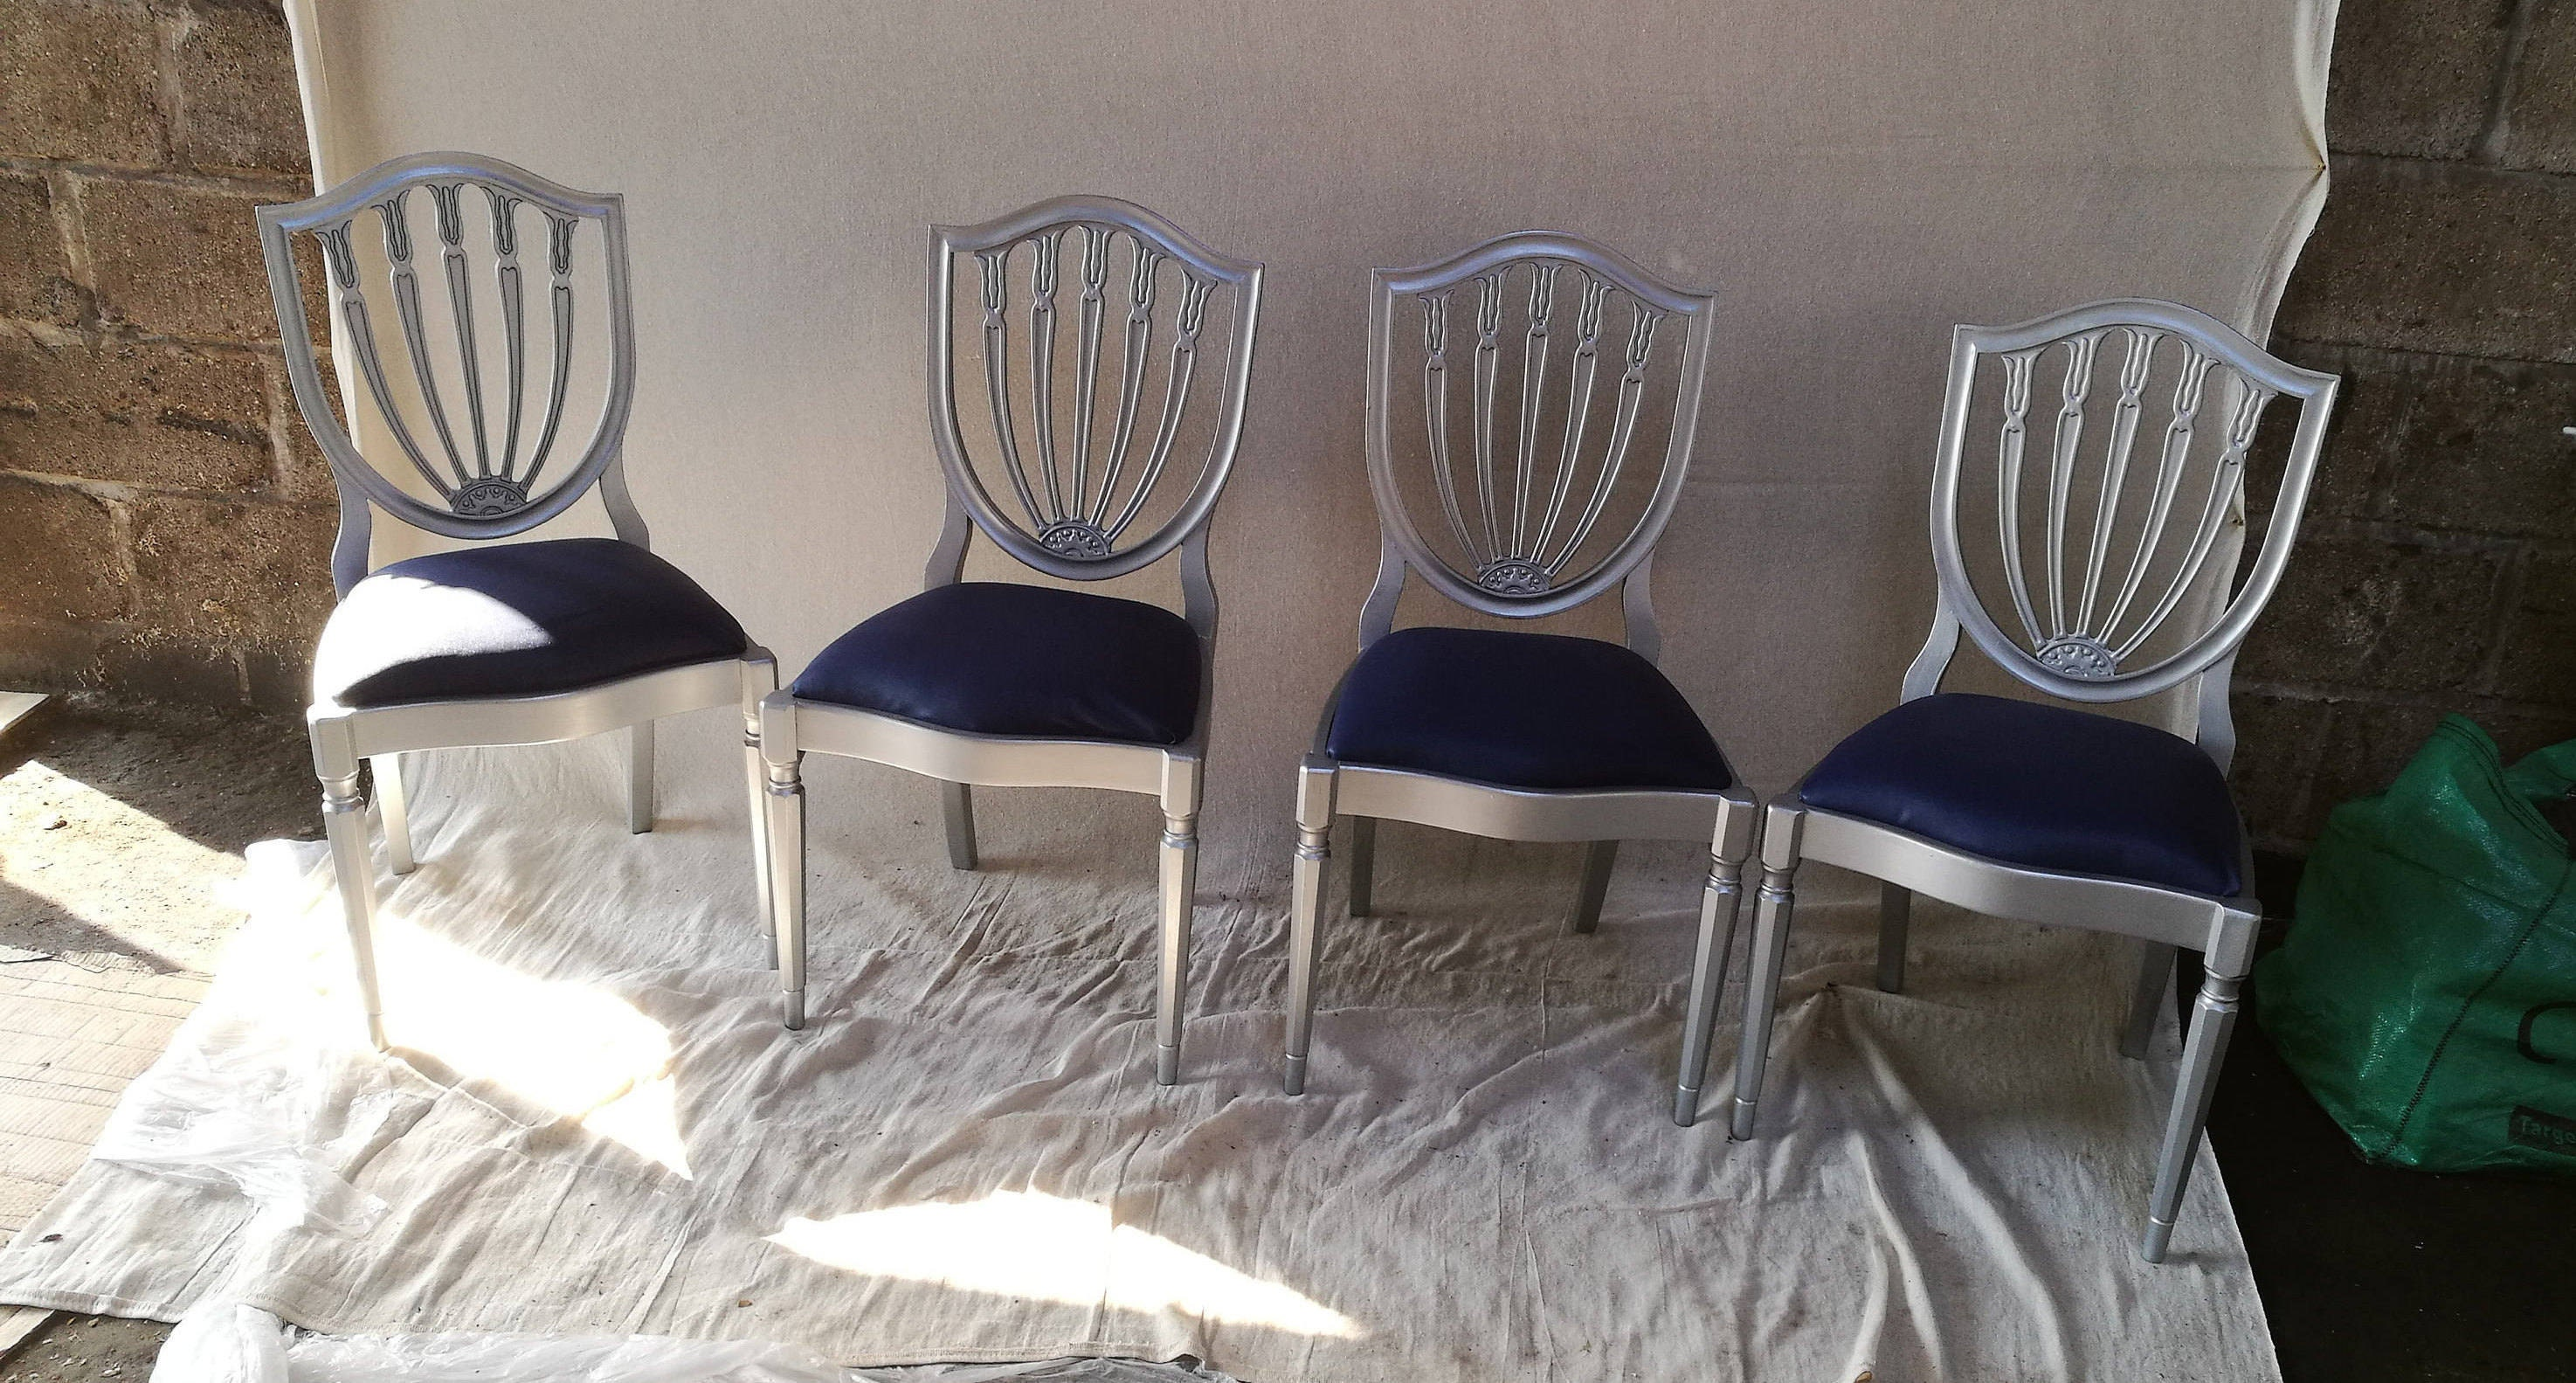 Canute chairs carved chairs upcycled chairs upcycled ornate chairs recycled chairs chairs with upholstered seats dining chairs